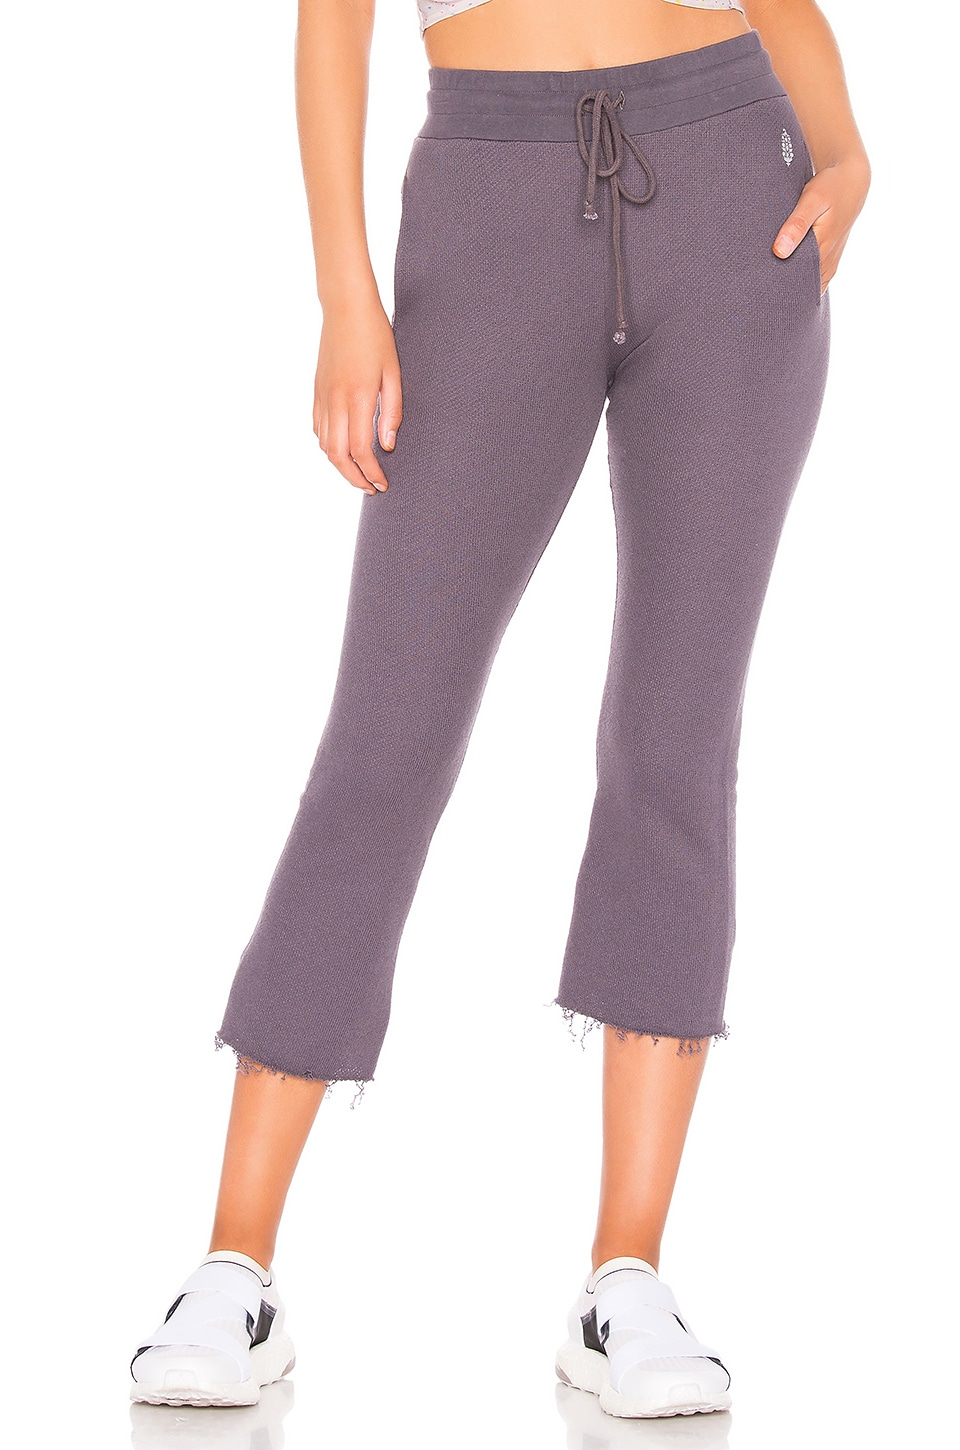 Free People X FP Movement Reyes Sweat Pant in Graphite